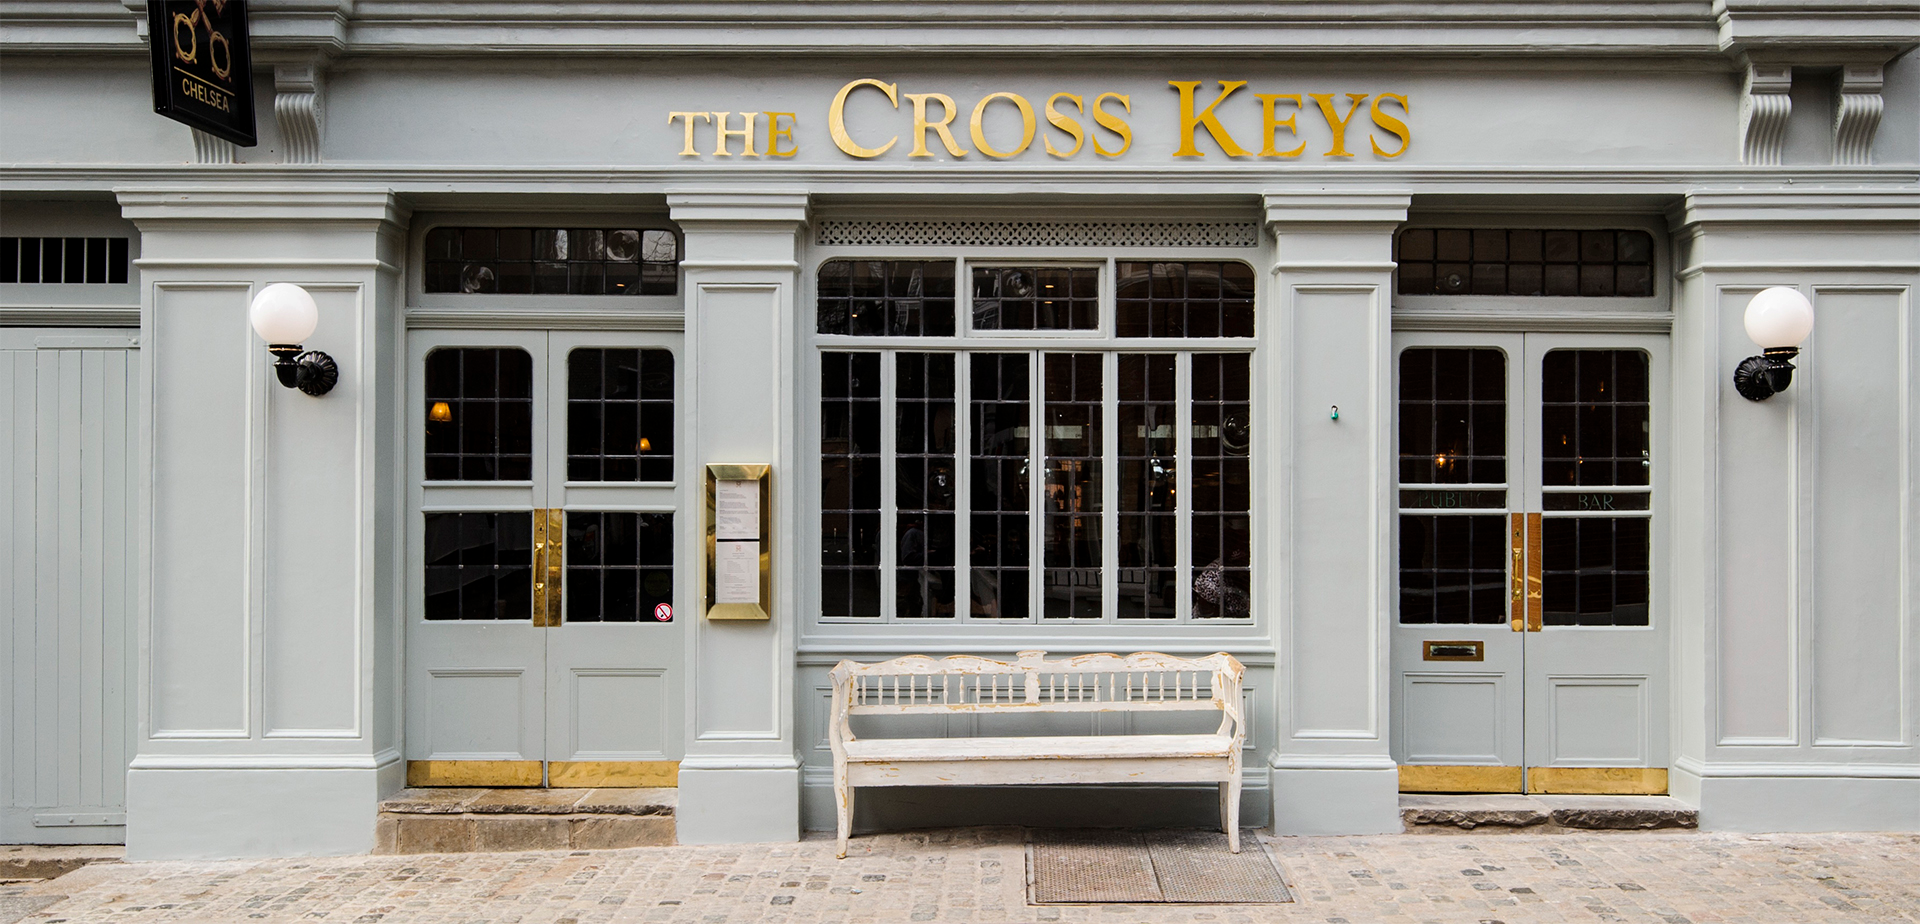 Cross Keys Pub in Chelsea